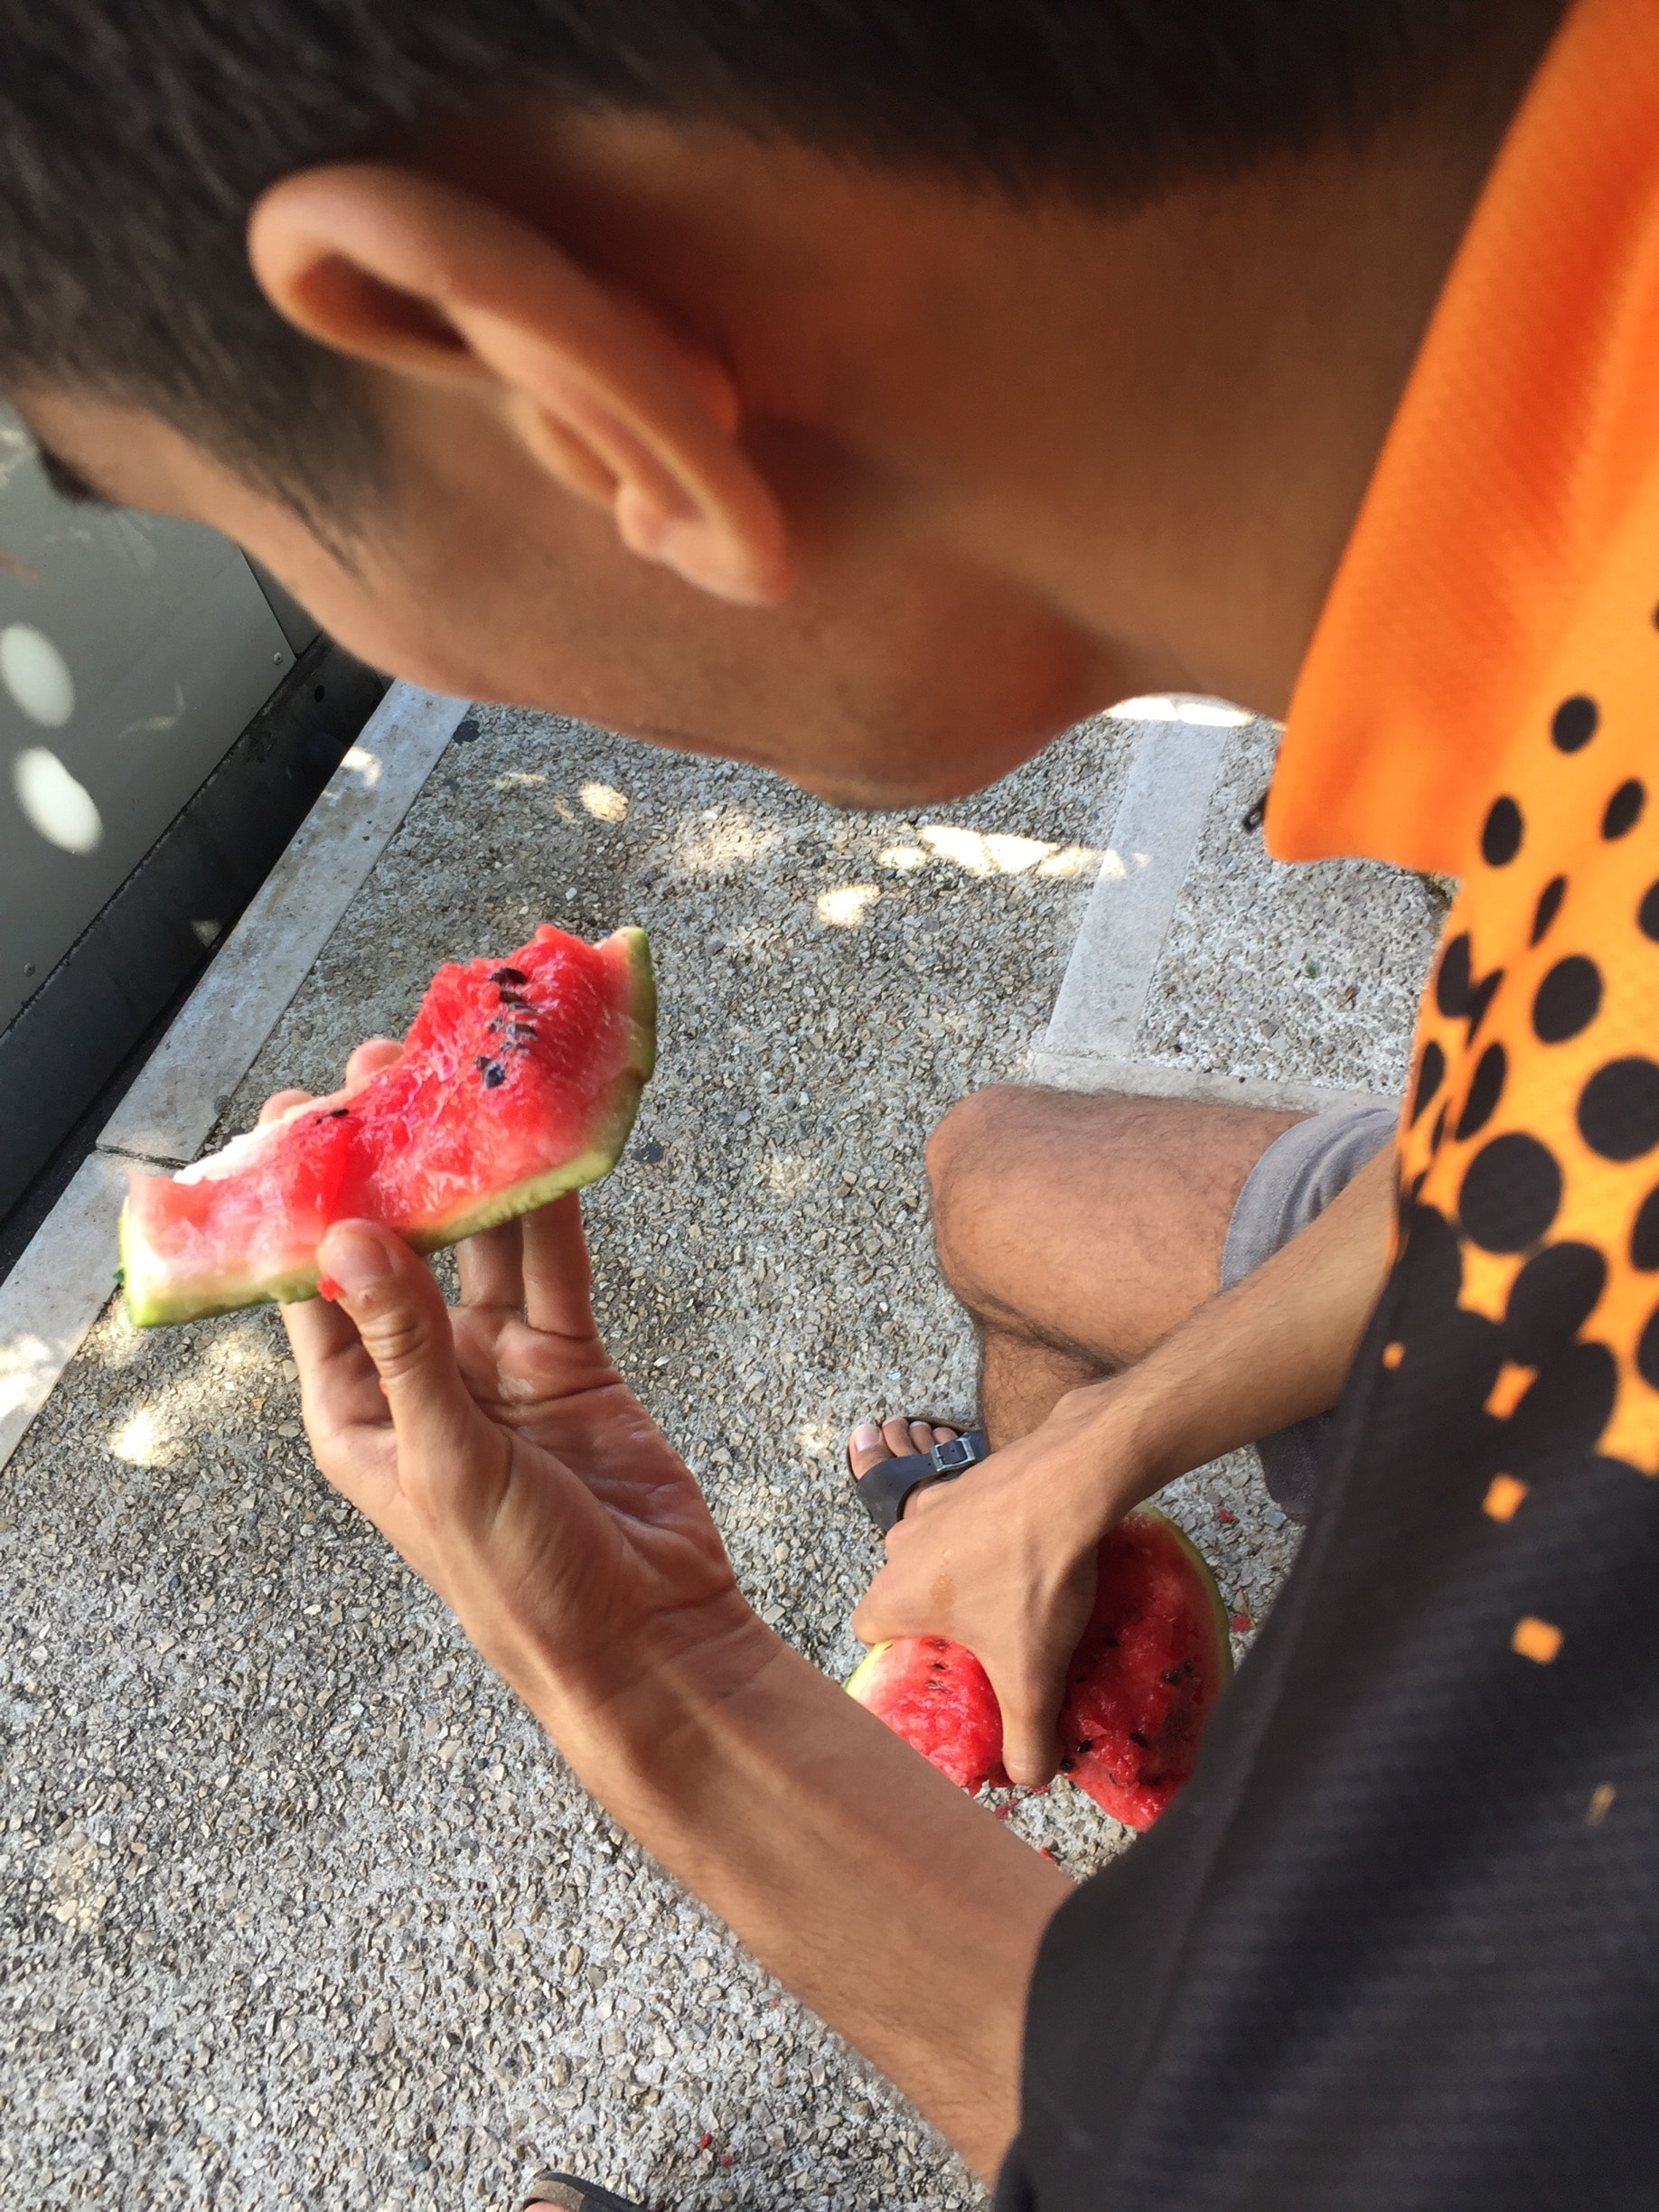 Eating one fourth of the watermellon without the knife